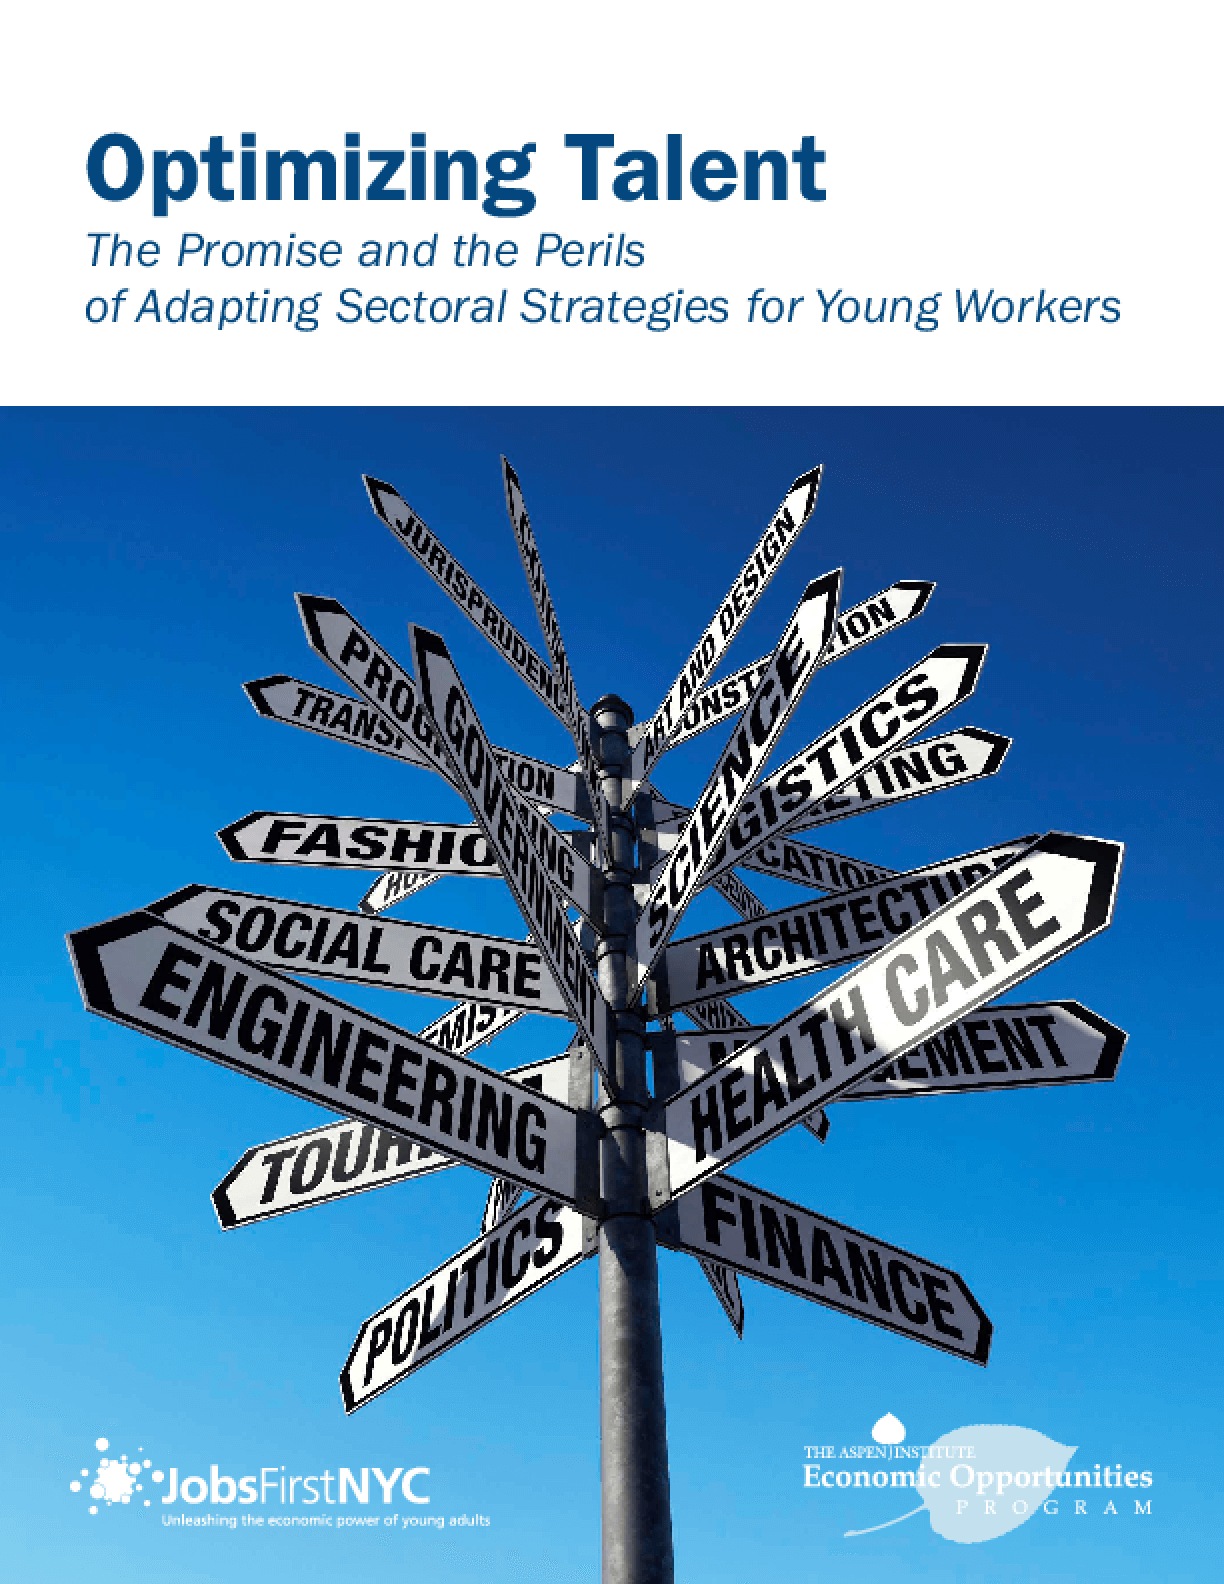 Optimizing Talent: The Promise and the Perils of Adapting Sectoral Strategies for Young Workers